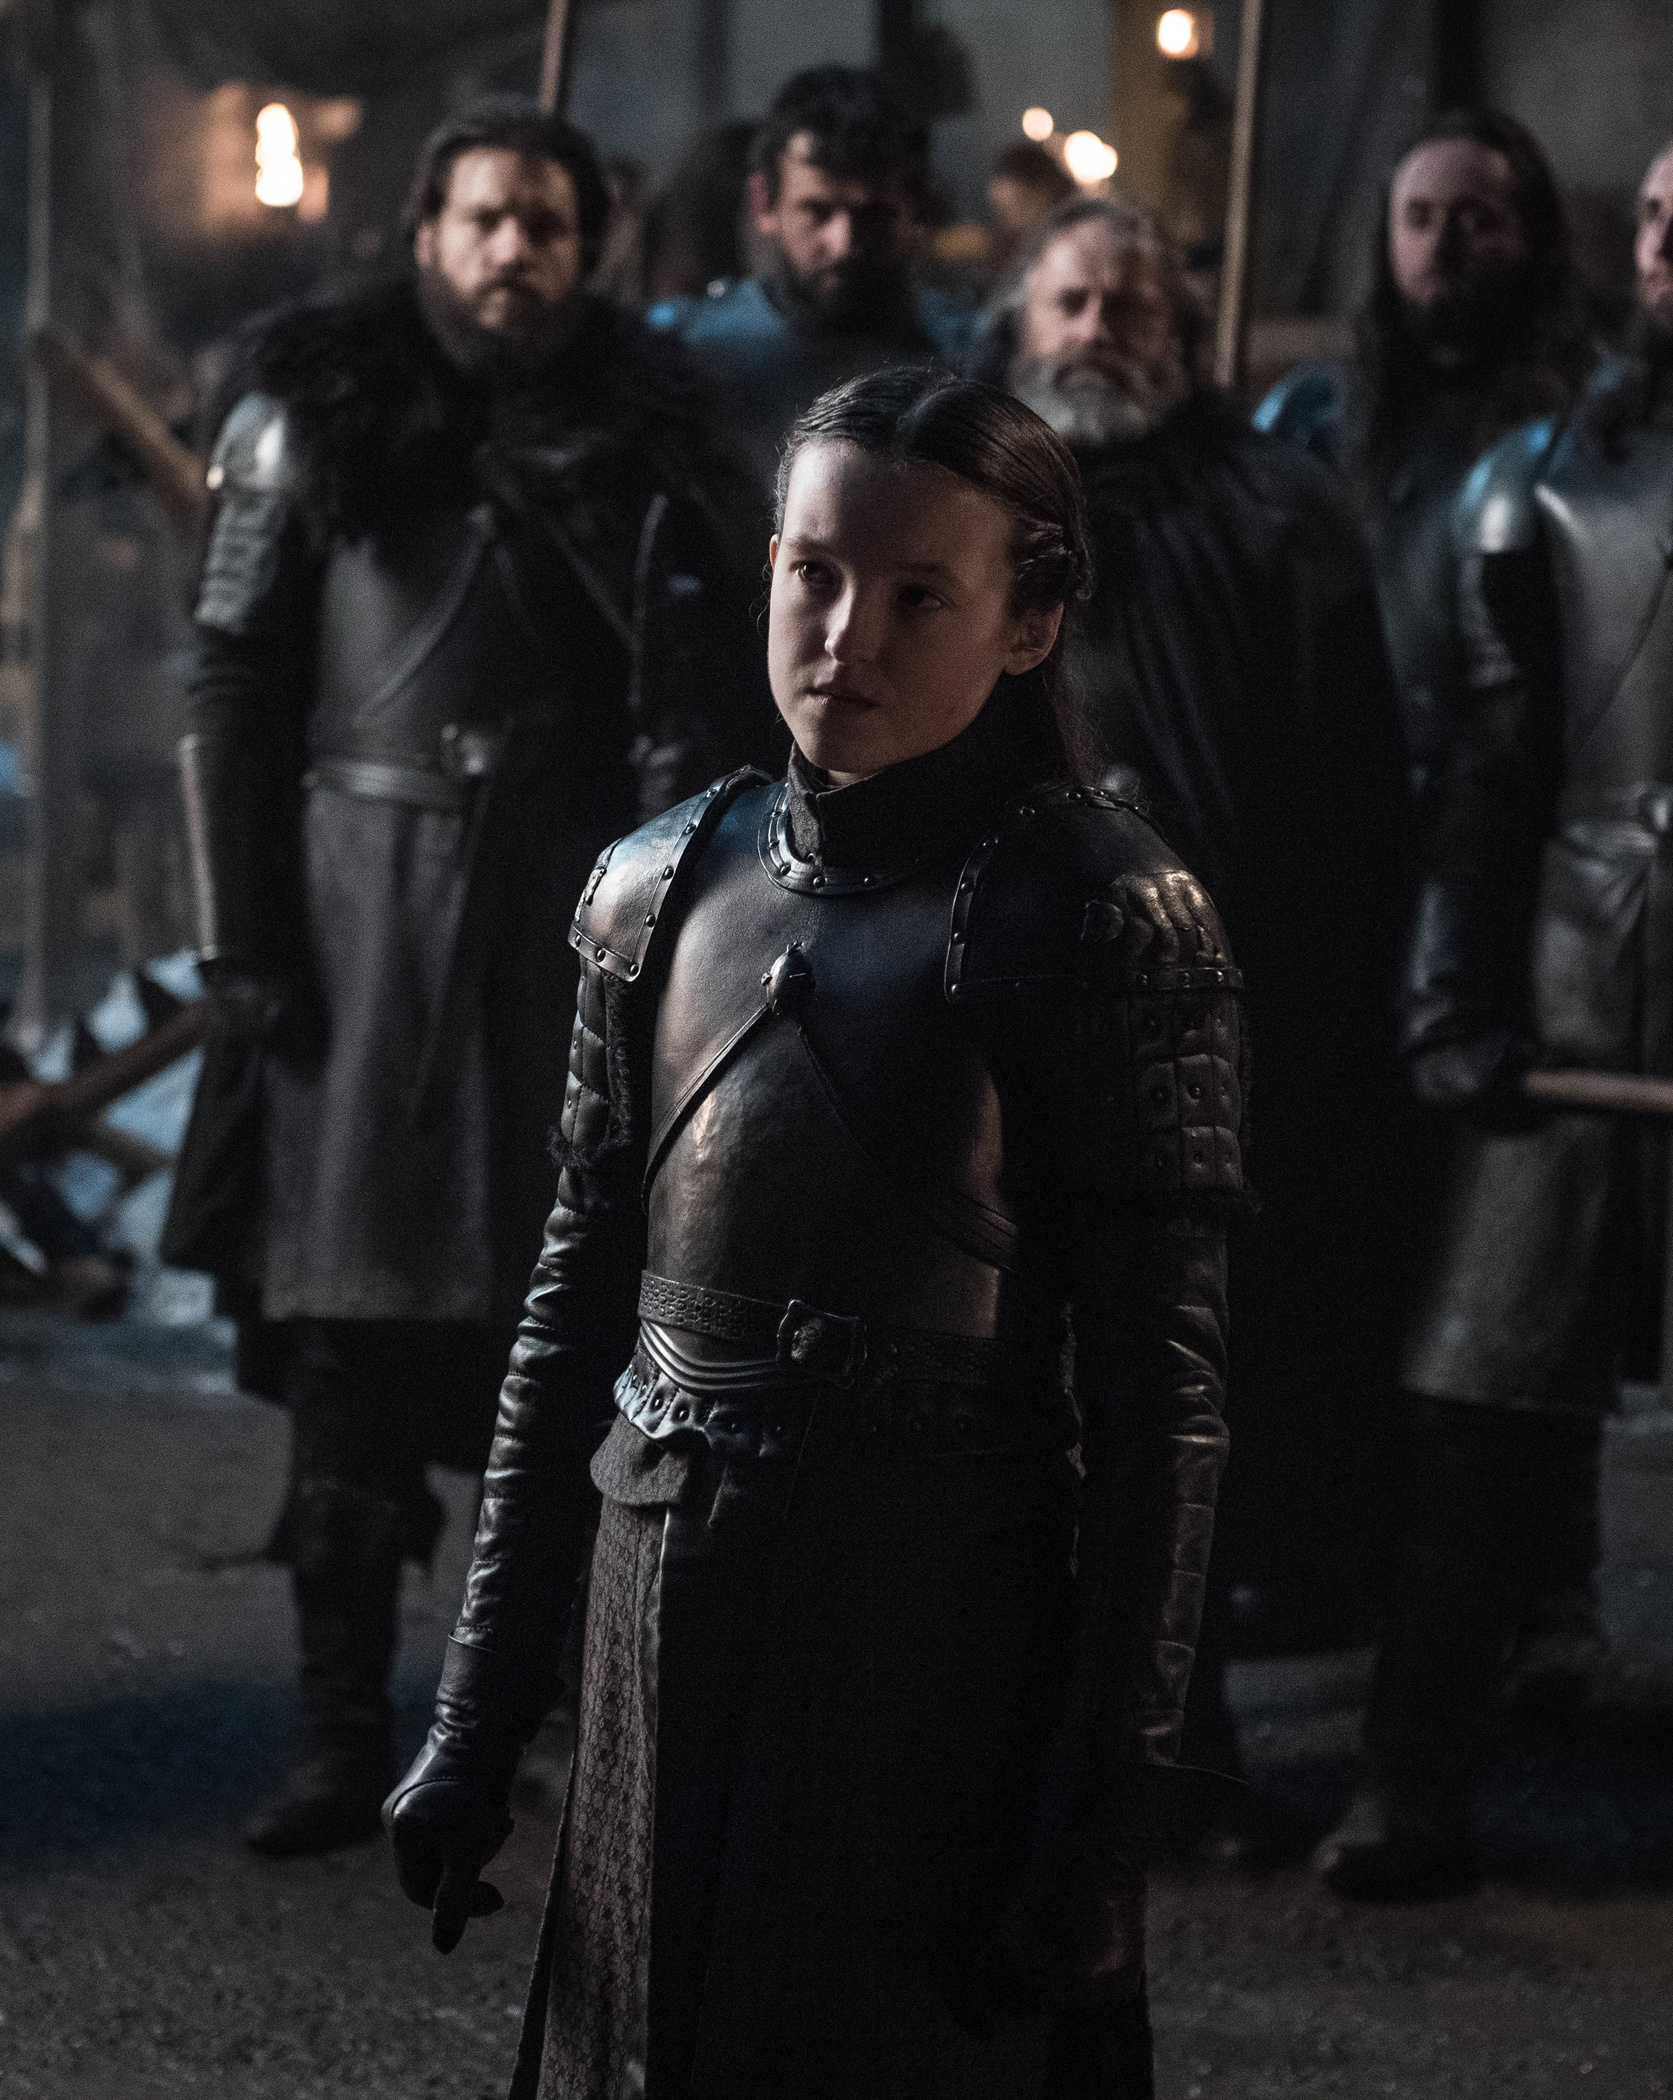 Photos for GAME OF THRONES' Second Episode Are Very Unsettling_24